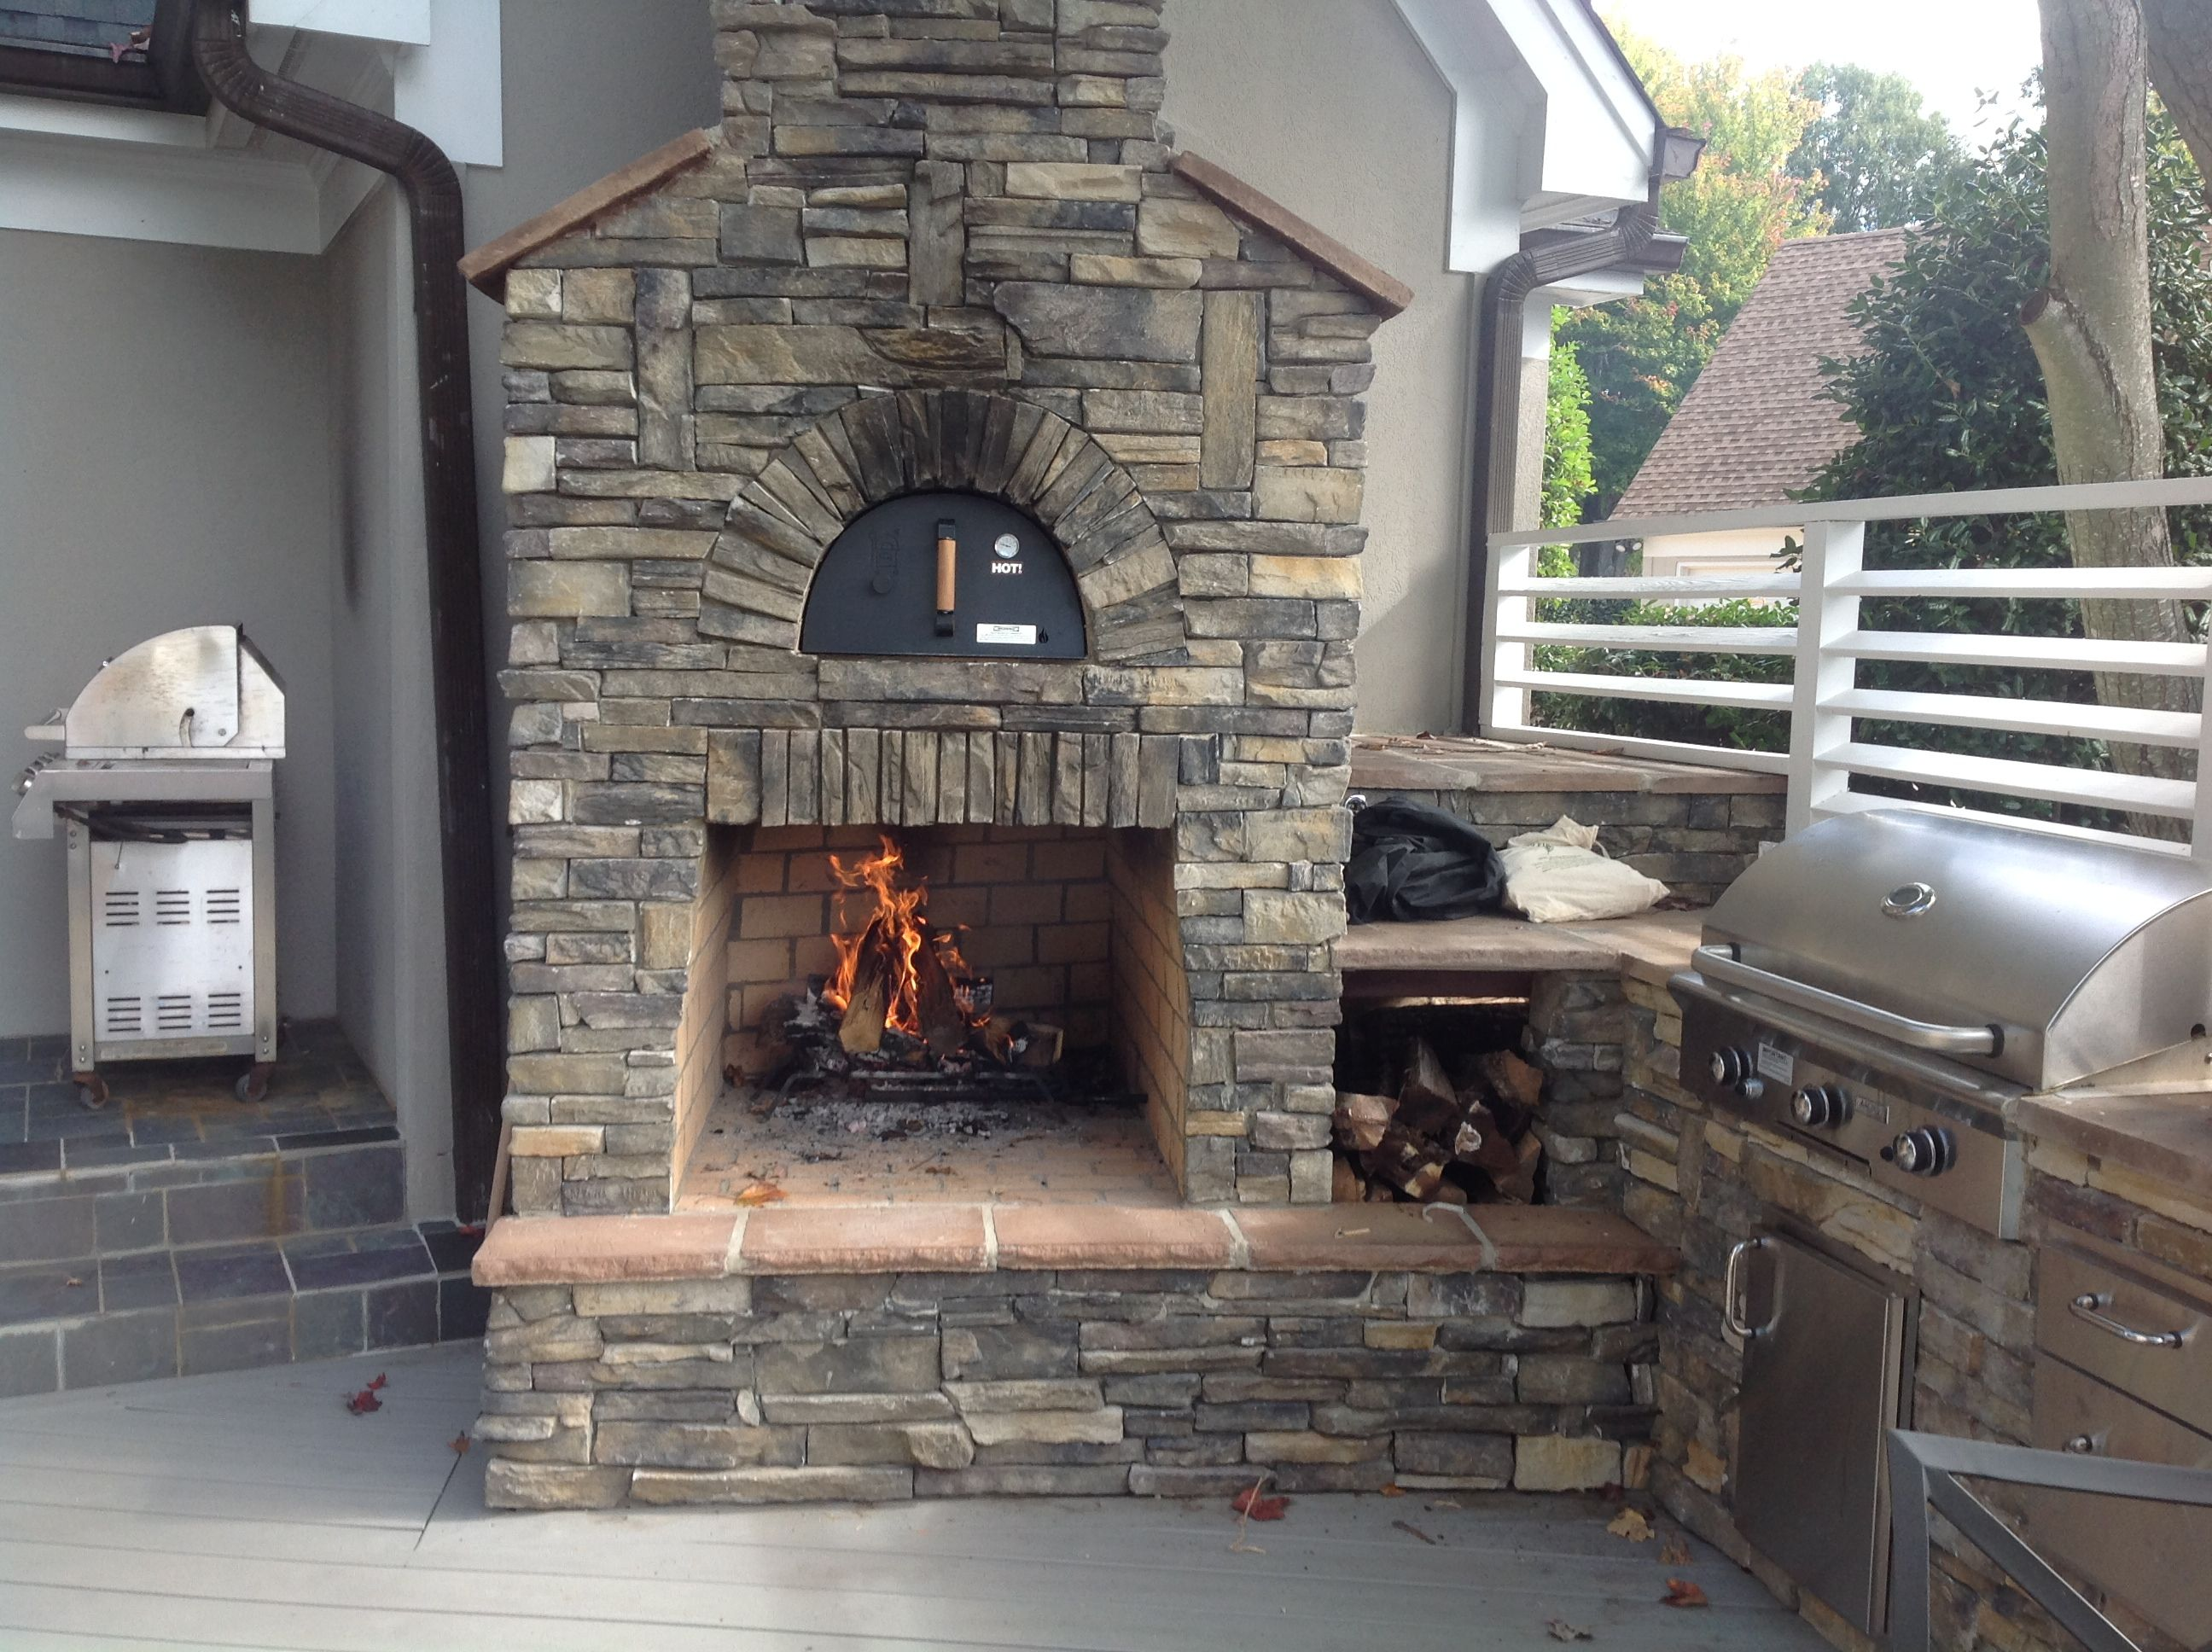 custom outdoor fireplace and pizza oven with an outdoor kitchen on a